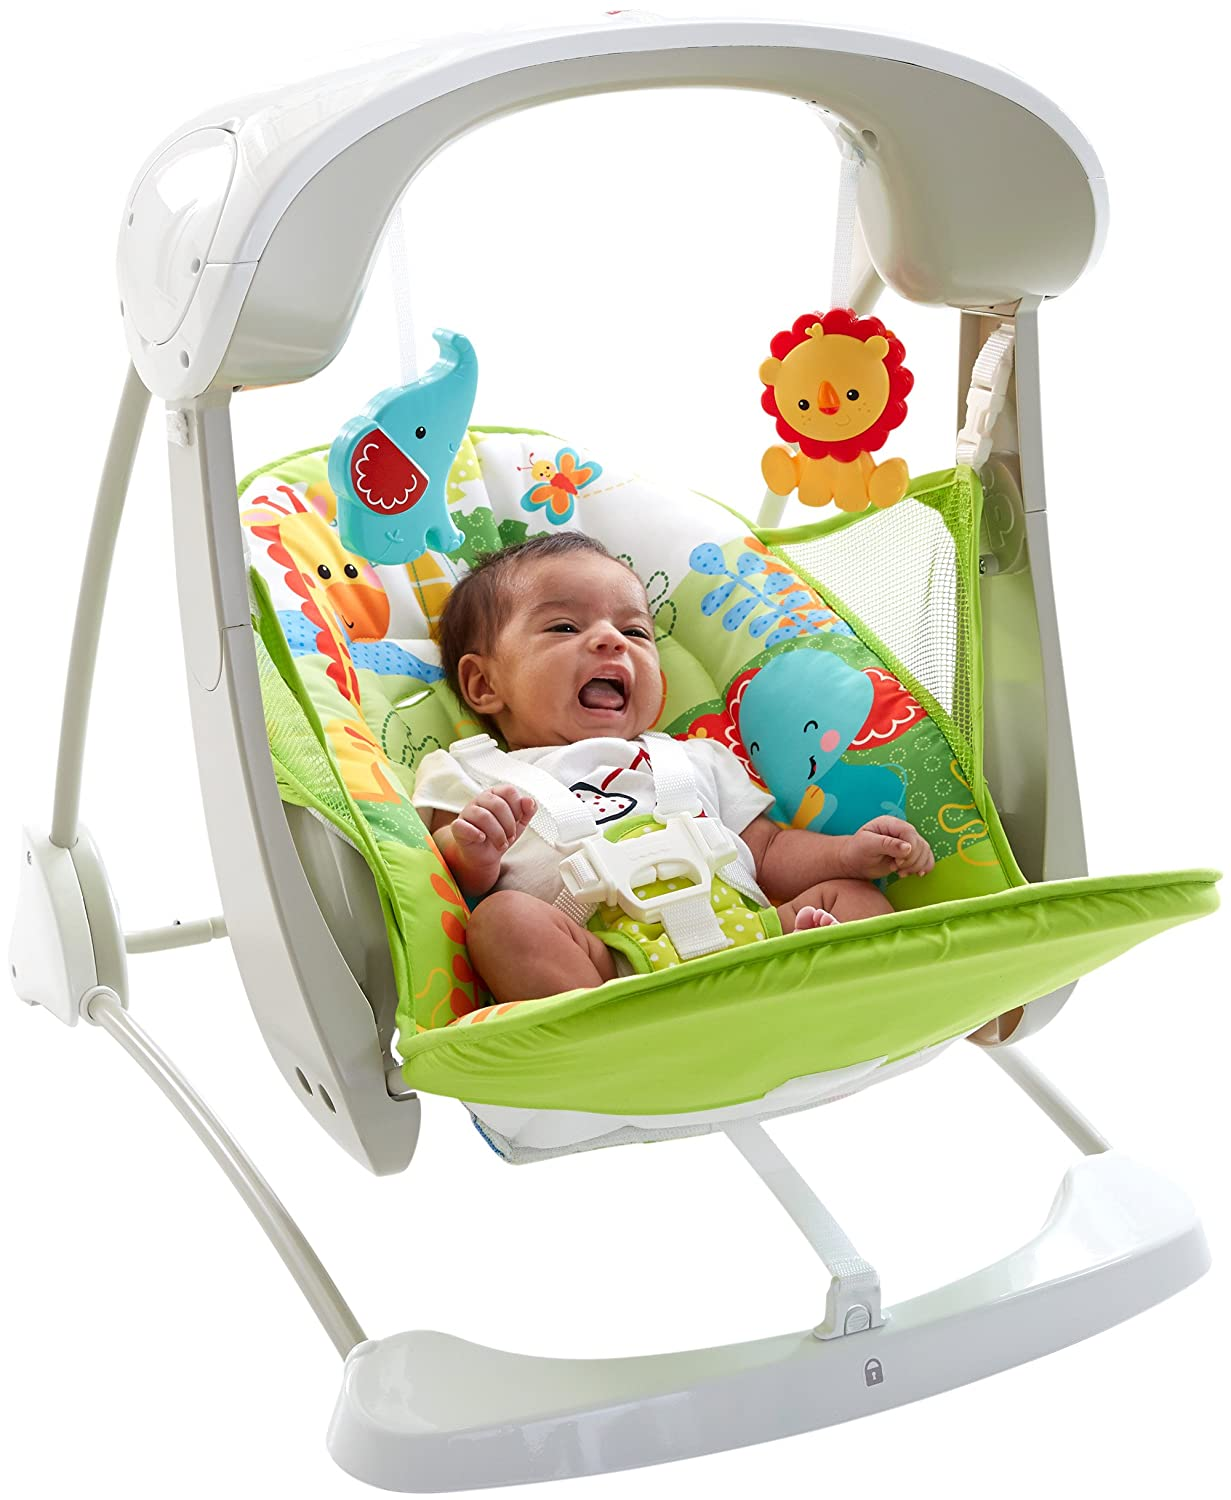 8120ntNNhqL. SL1500 The Best Fisher-Price Baby Swings for 2021 Review